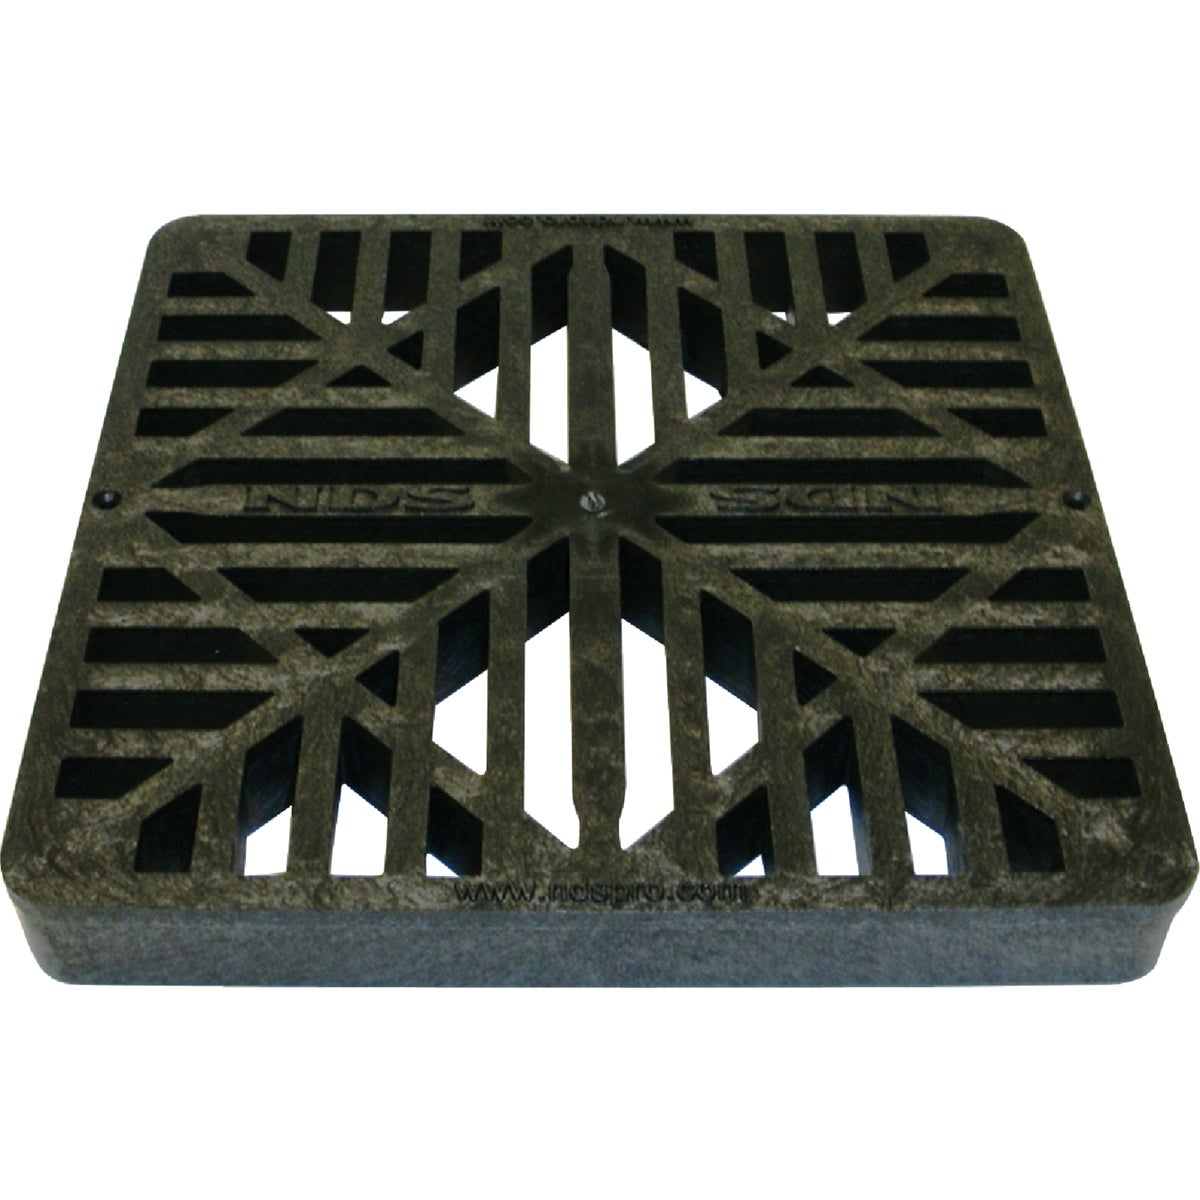 9X9 BLACK BASIN GRATE - 980 by National Diversified